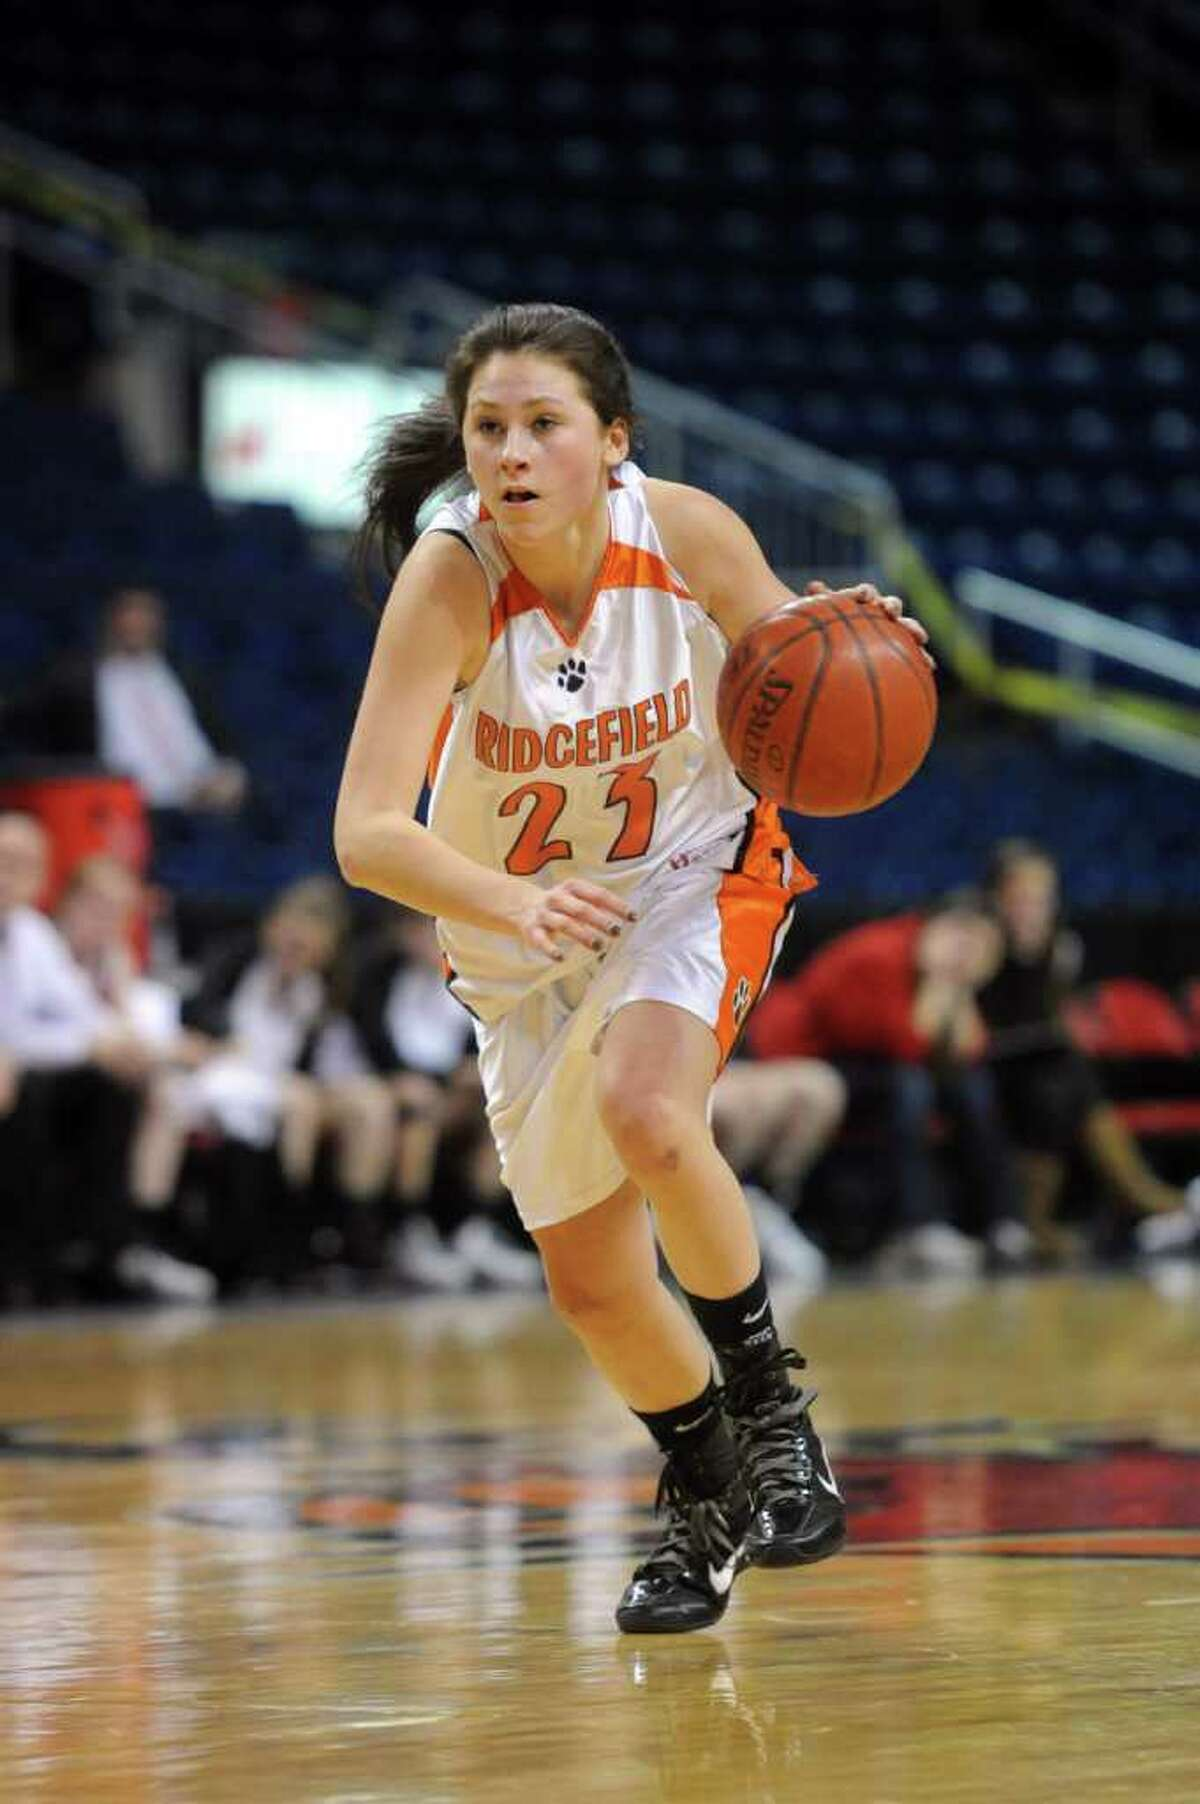 Emily Favorite dribbles for Ridgefield during Tuesday's FCIAC girls basketball semifinal game at the Webster Bank Arena at Harbor Yard on Feburary 22, 2011.